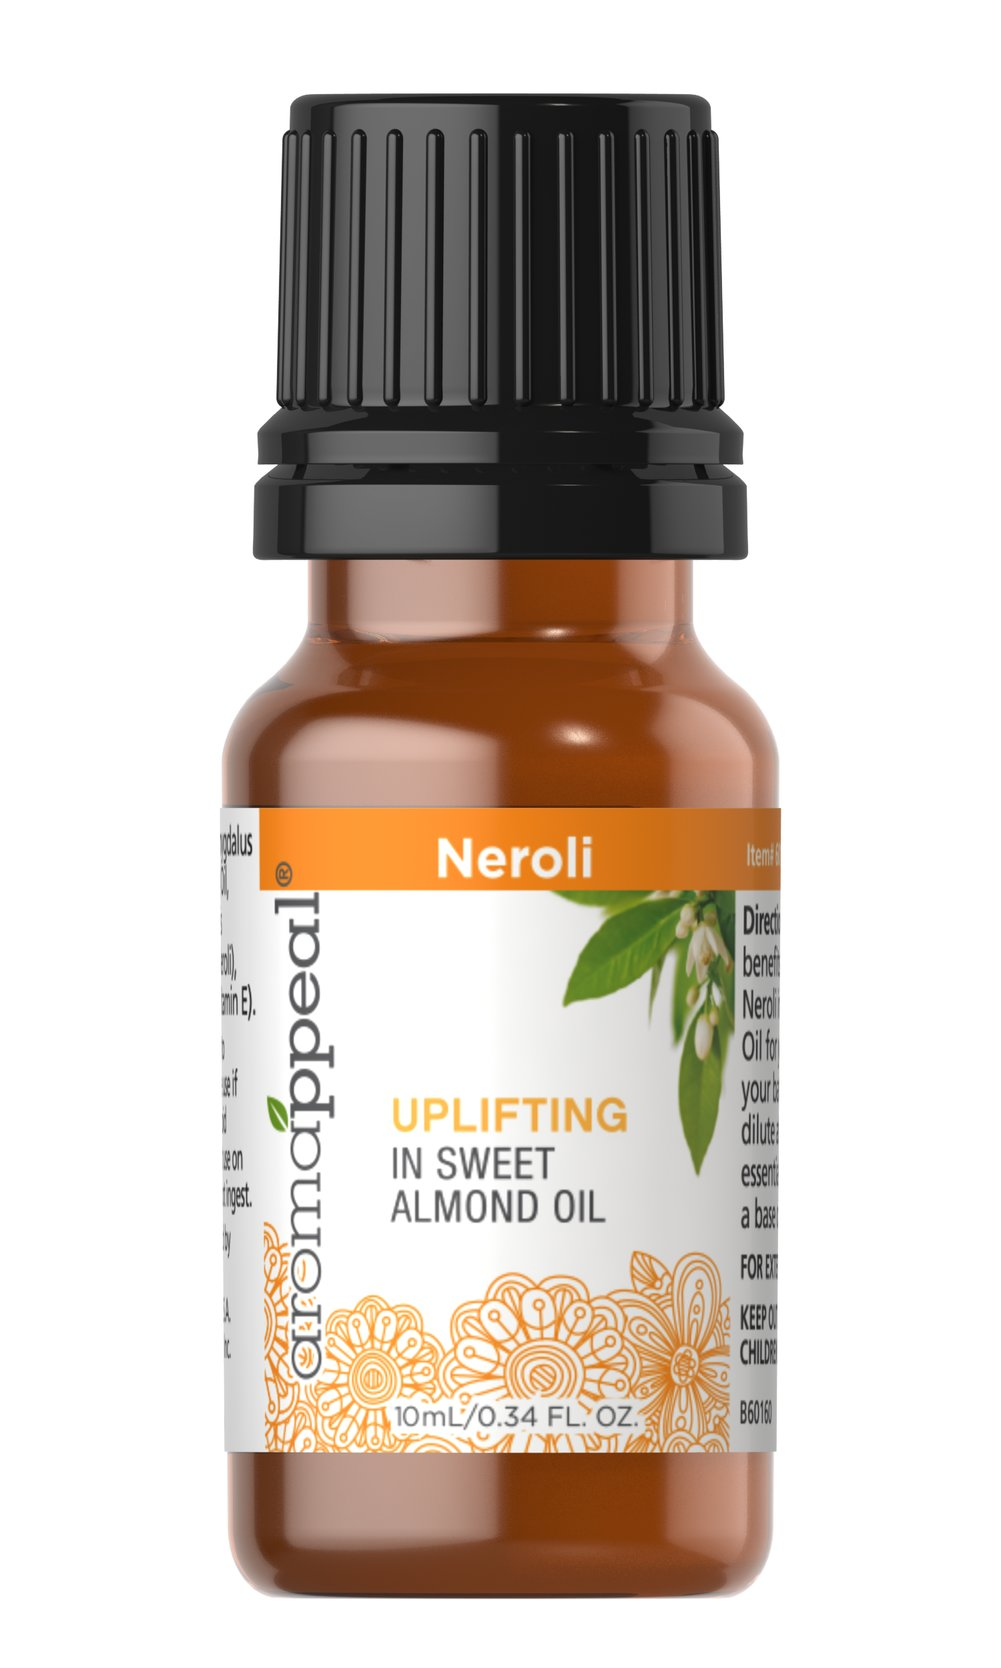 "Neroli Essential Oil Blend Invite genuine serenity into your life with the peaceful, balancing influence of Neroli Oil. <p>Known for its delicate floral scent, Neroli has been traditionally prized for its contributions nervous system health, as well as its ability to support circulatory and digestive function.</p><ul><li><span class=""bold-pink"">Traditional Uses:</span> Neurotonic for tranquility and serenity, circulation, & digestion. </li"